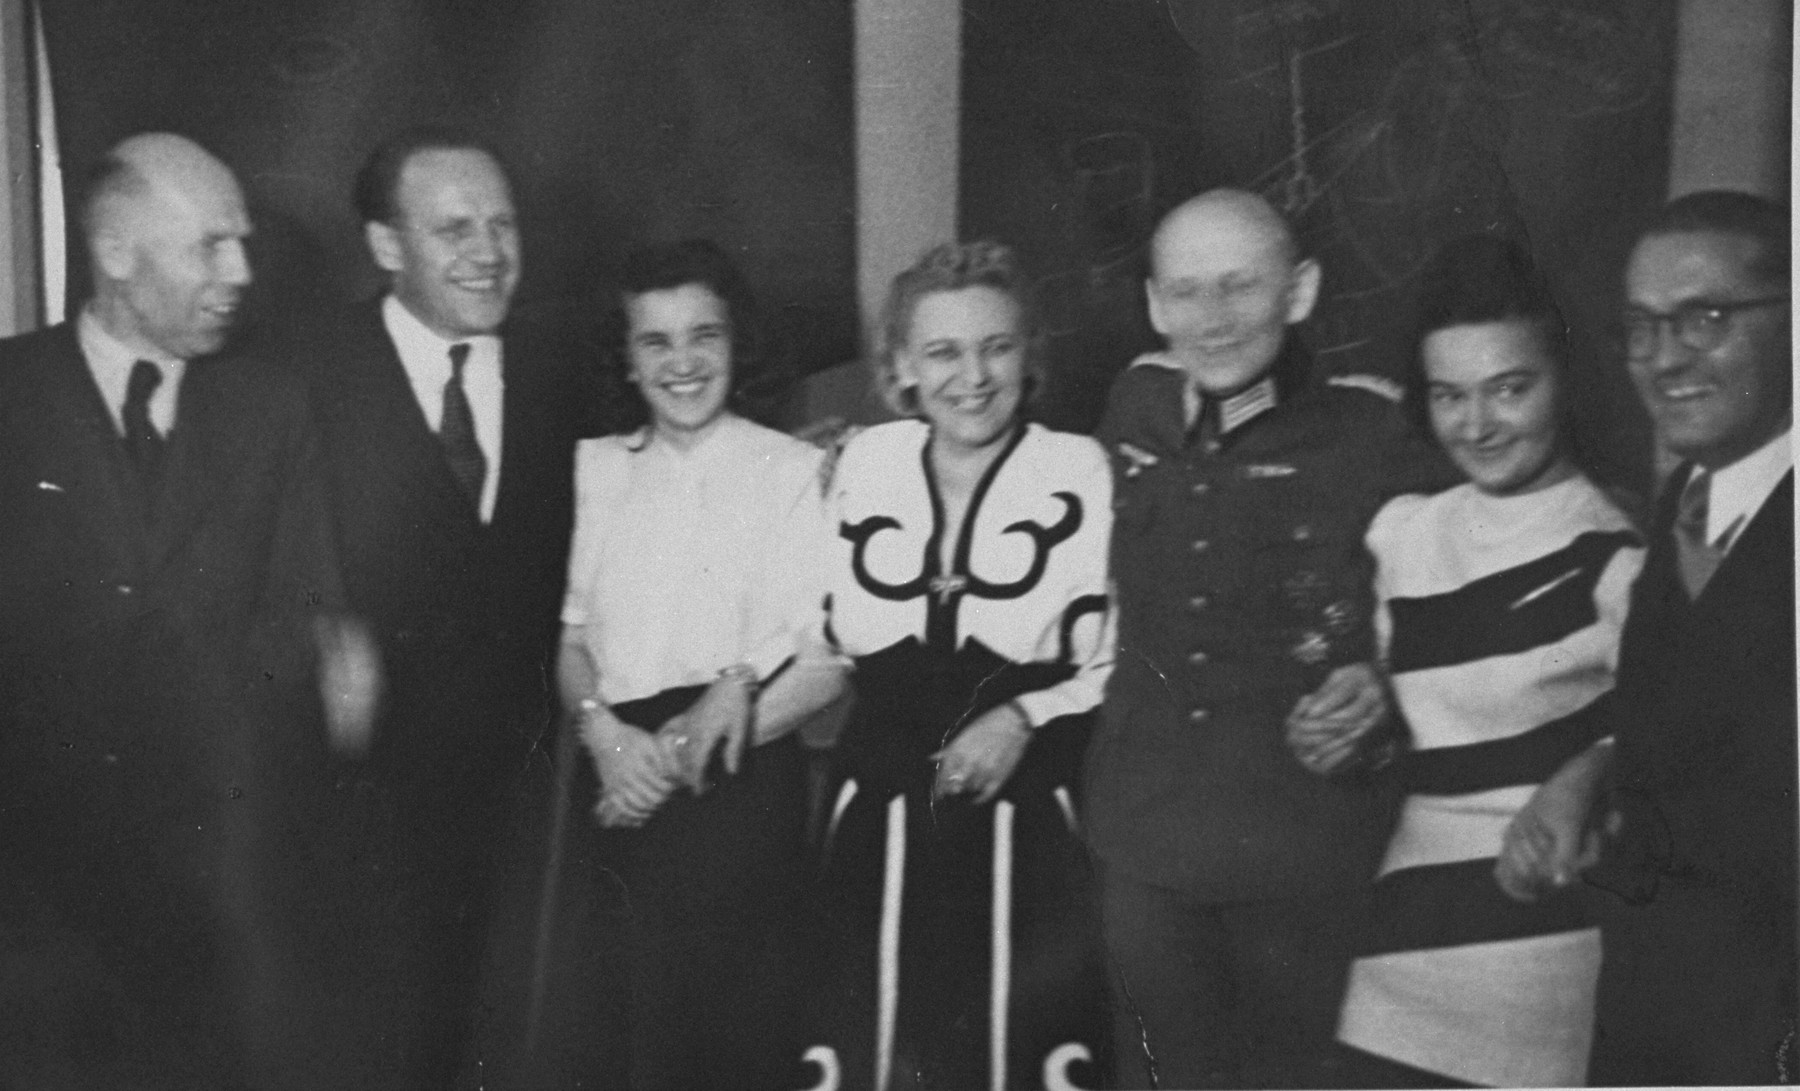 Oskar Schindler at a party with friends and a German army officer.    At parties like this, Schindler made contact with various SS and German officials, which often led to tips about impending deportations that enabled him to save his laborers.